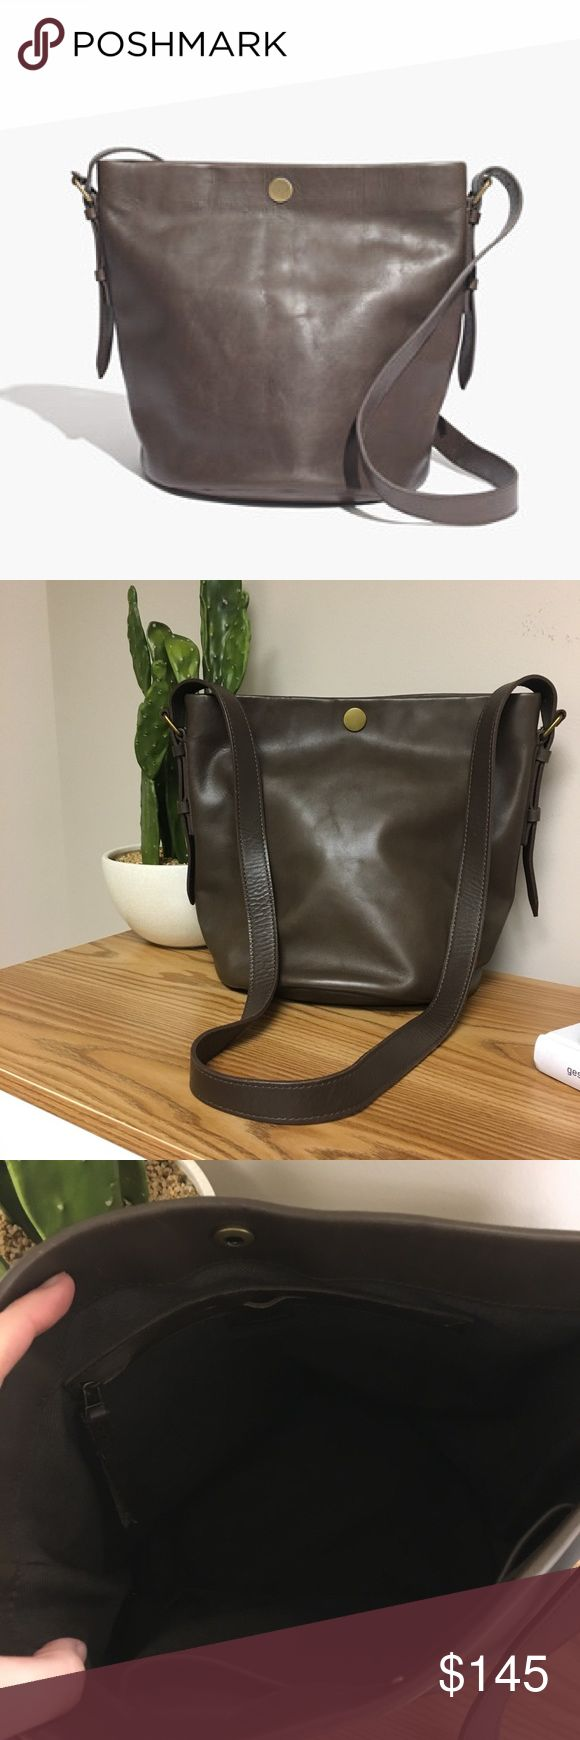 Madewell Portland Bucket Bag Great condition! Color is gray-brown. Madewell Bags Crossbody Bags